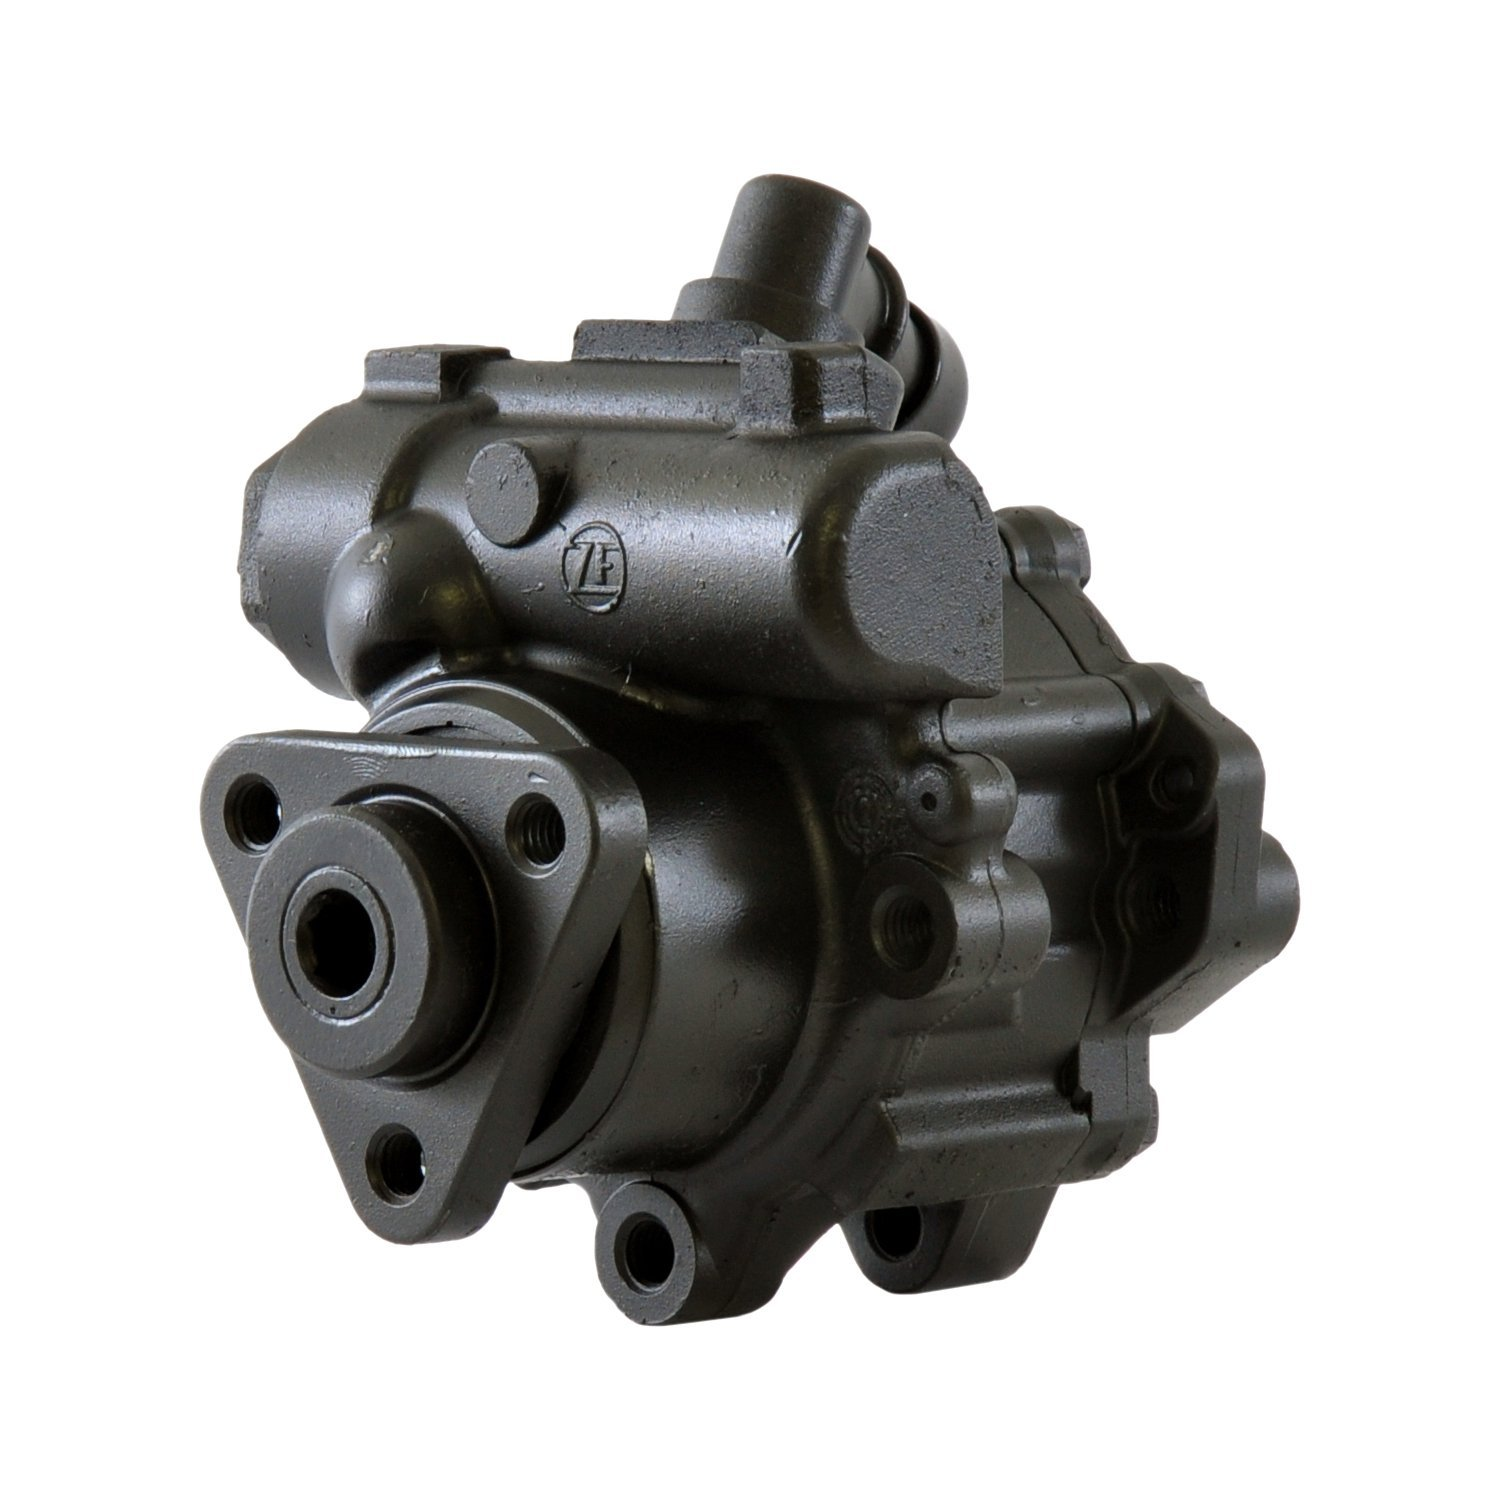 ACDelco 36P1132 Professional Power Steering Pump Remanufactured